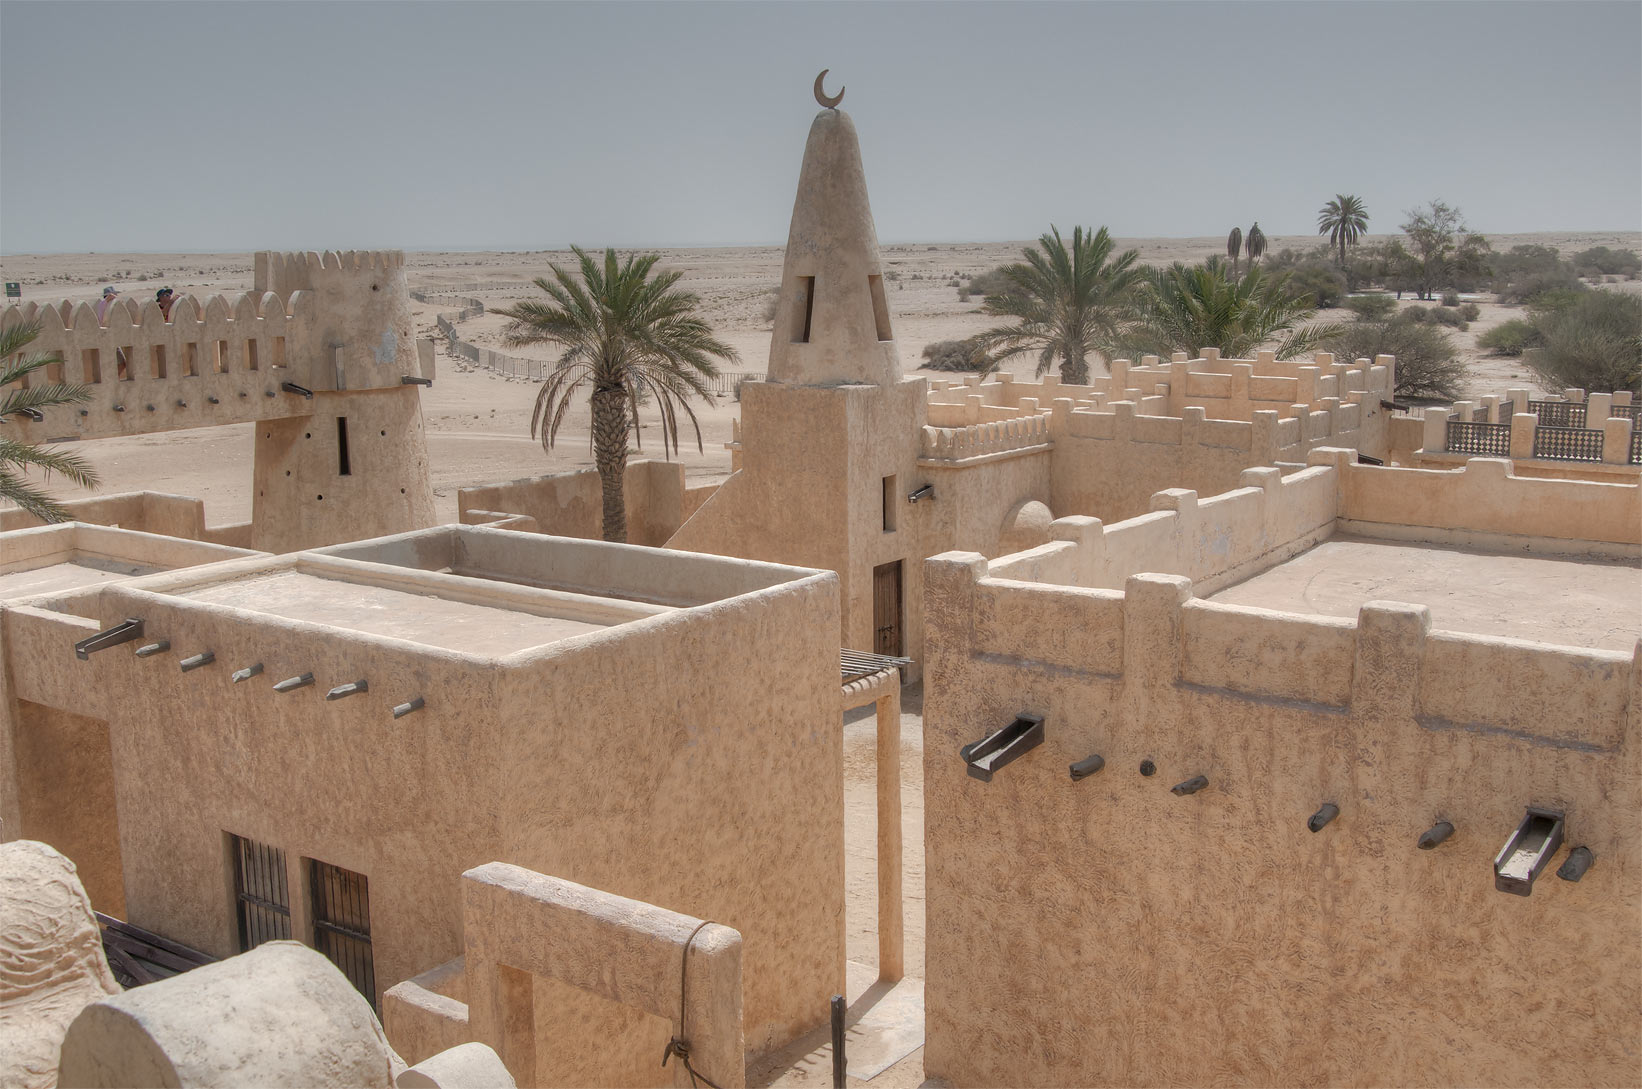 Houses, minarets and enclosed courtyards in Film...area, north from Zekreet. Qatar